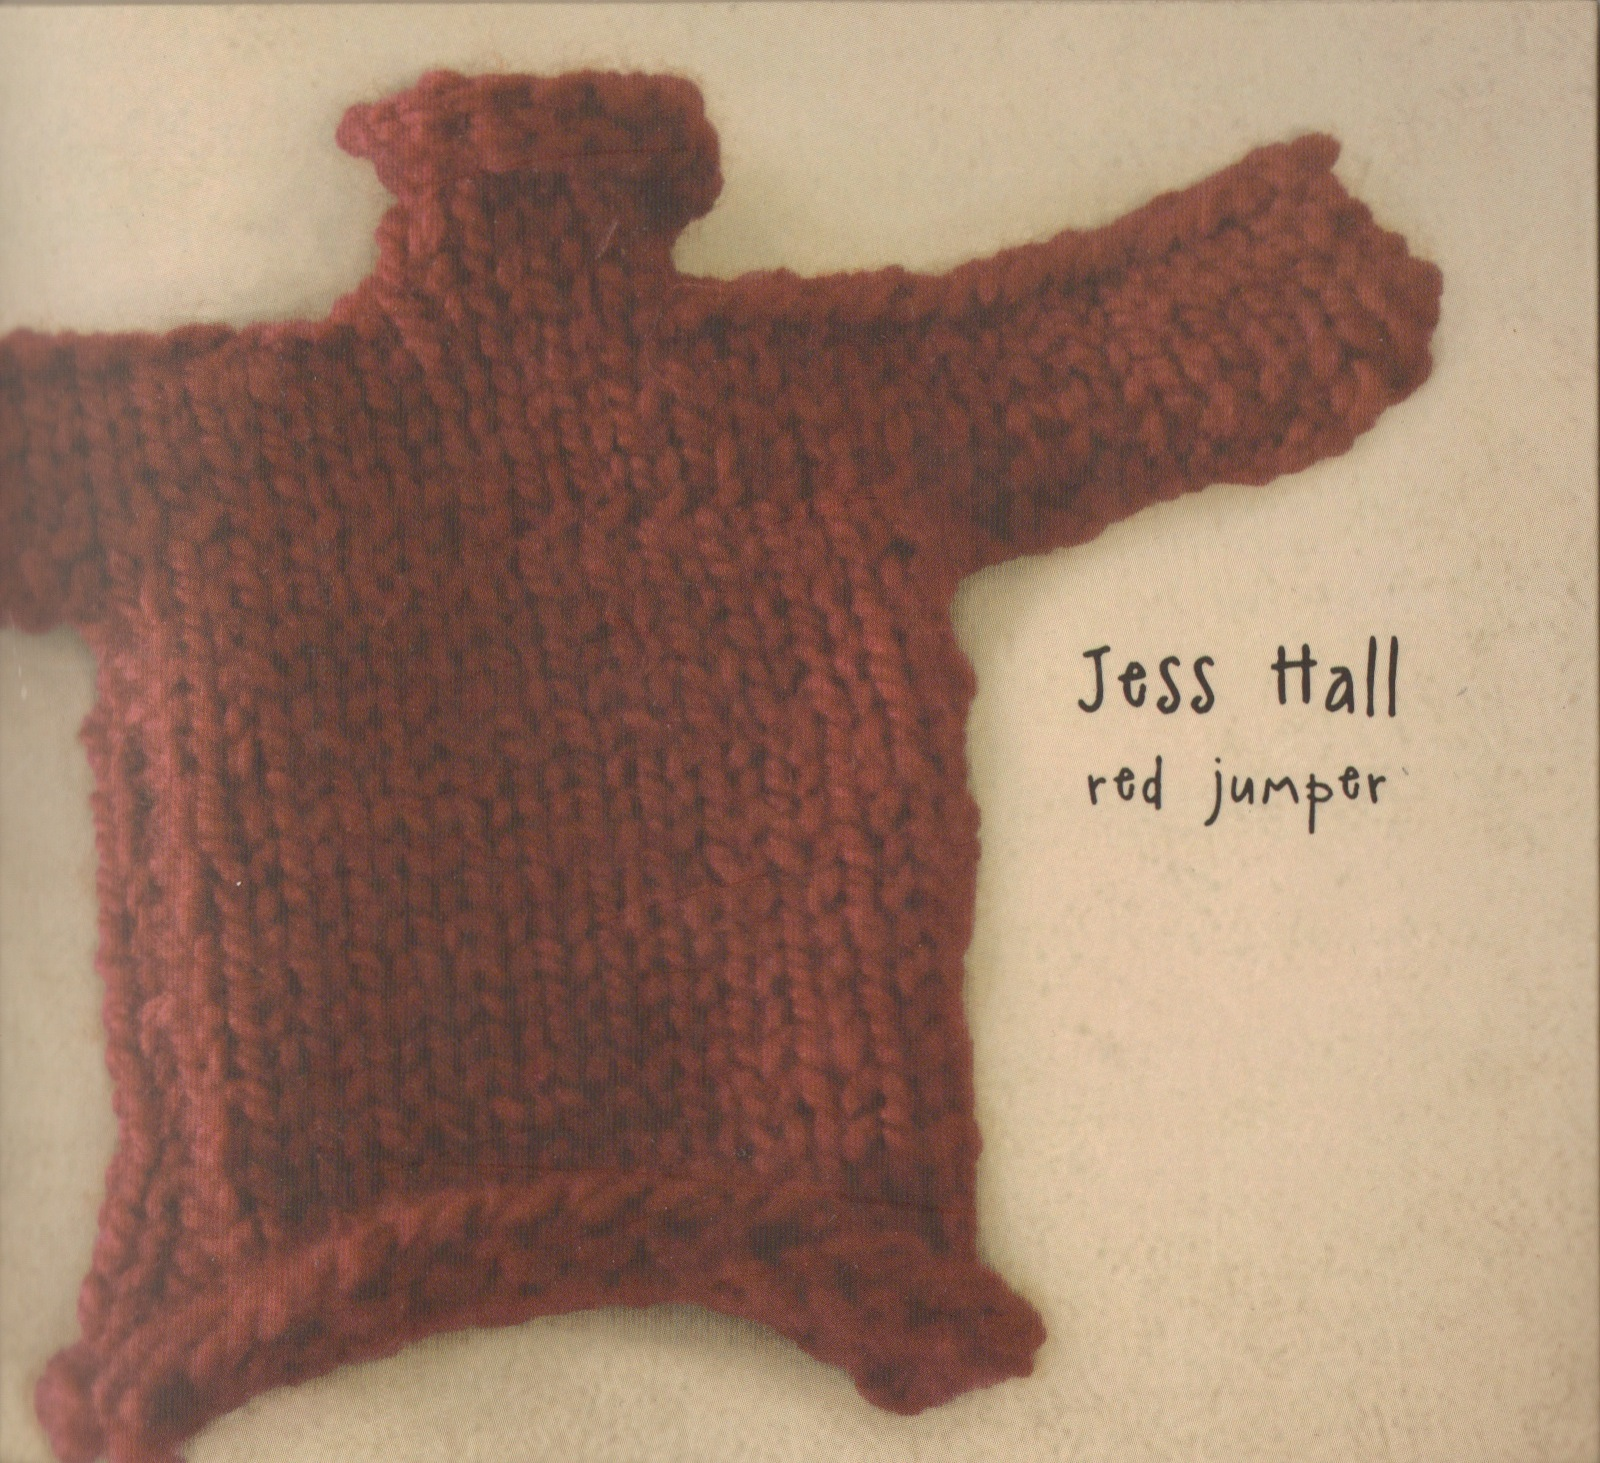 Red Jumper cover